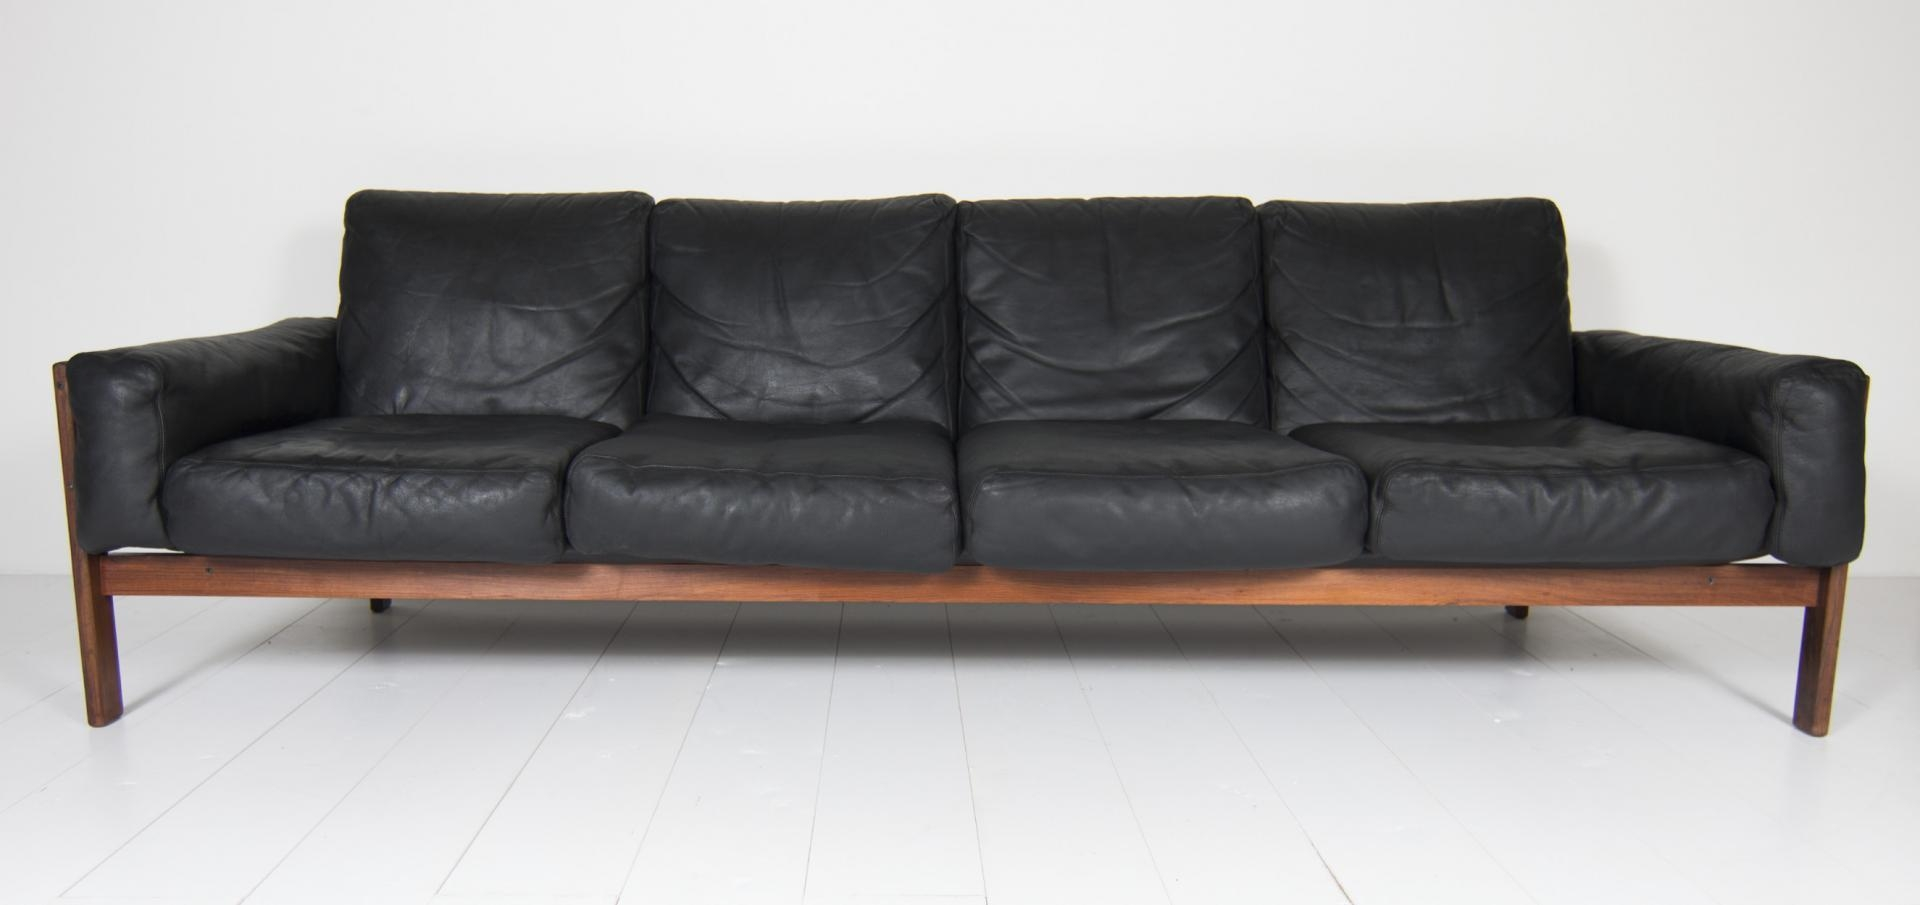 Four Seater Black Leather Sofasven Ivar Dysthe For Dokka For Pertaining To 4 Seat Leather Sofas (Image 4 of 20)